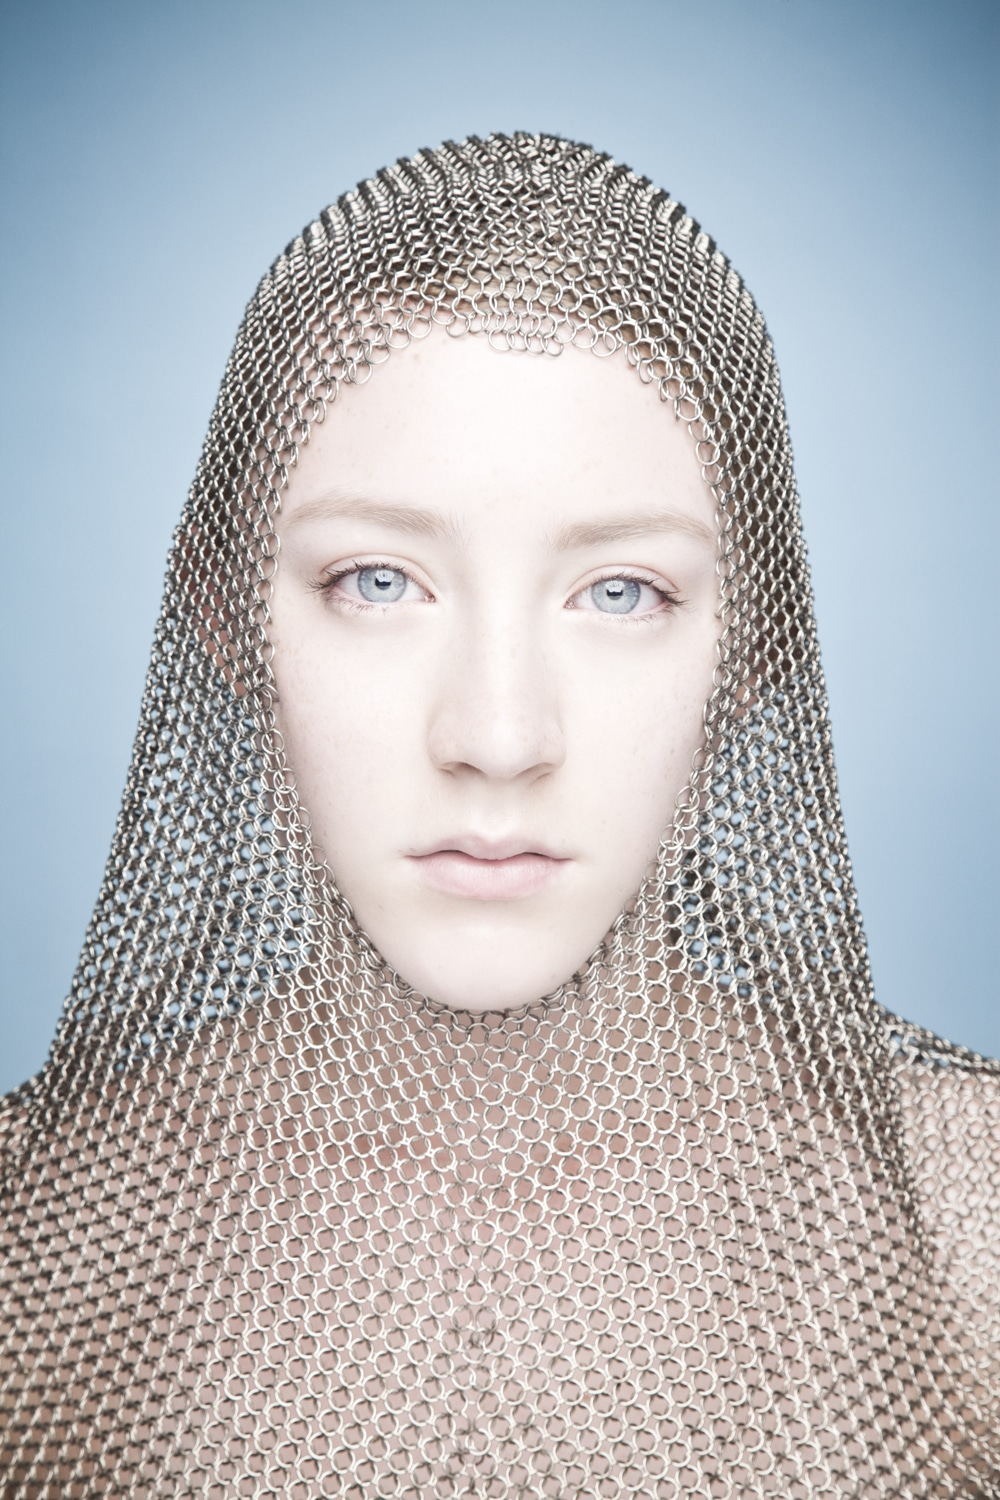 SAOIRSE RONAN PHOTOGRAPHED BY BARRY MCCALL FOR PHO20GRAPHY